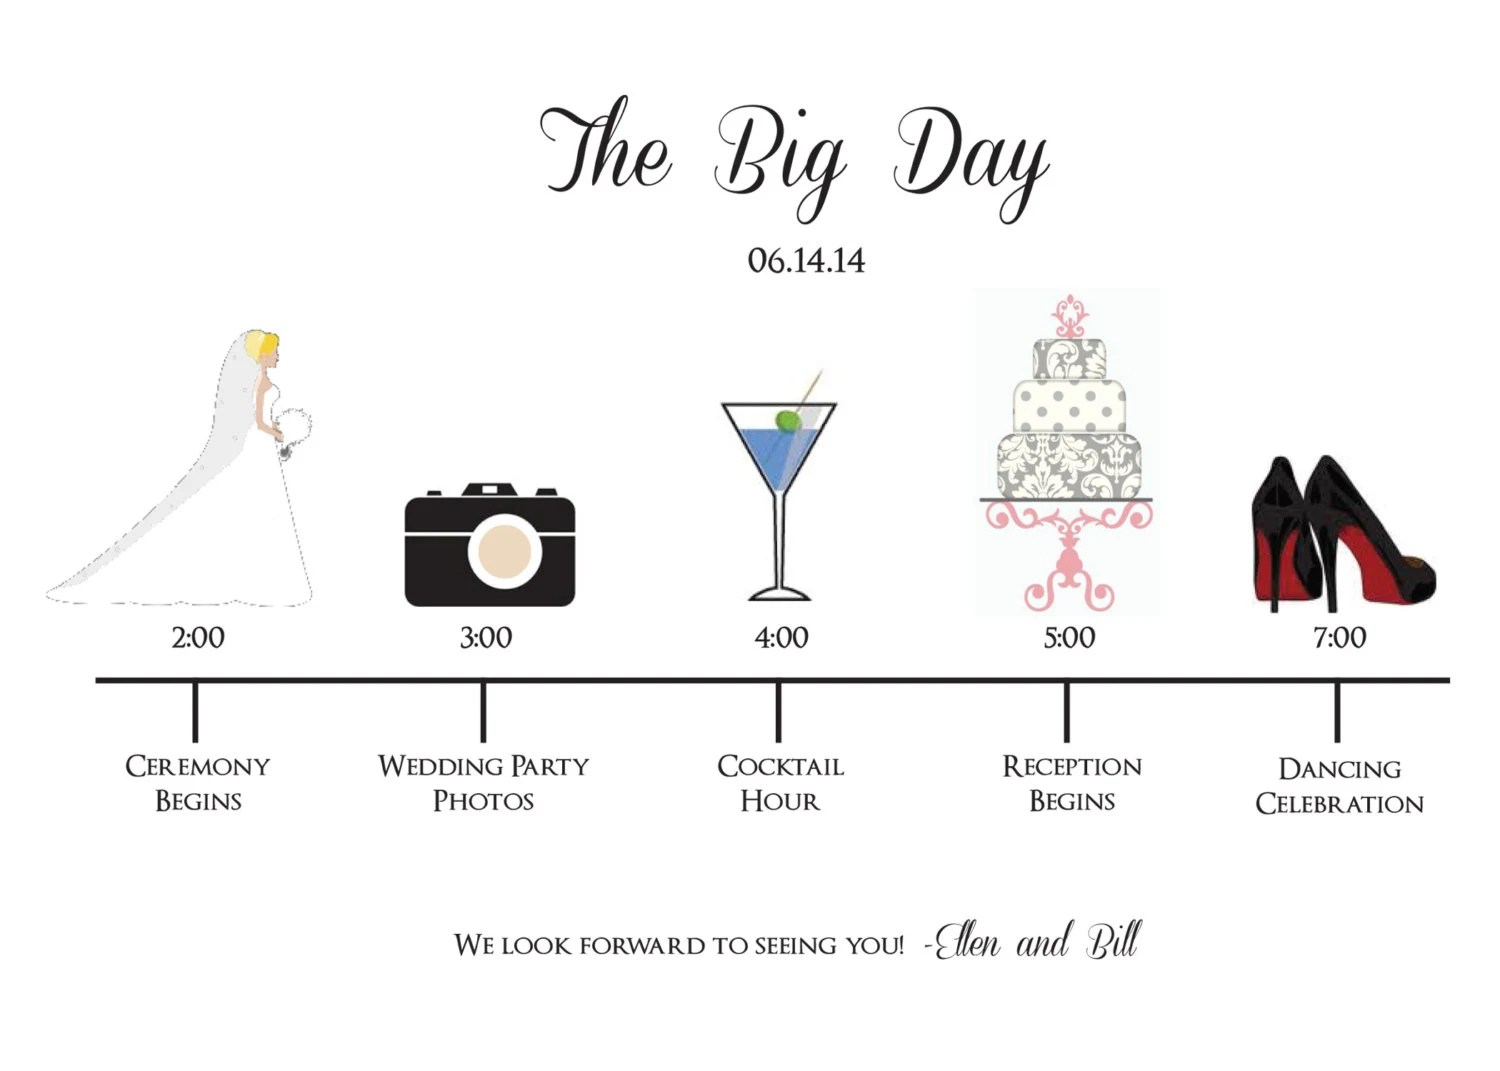 Wedding Party Schedule Timeline with Icons Customized and